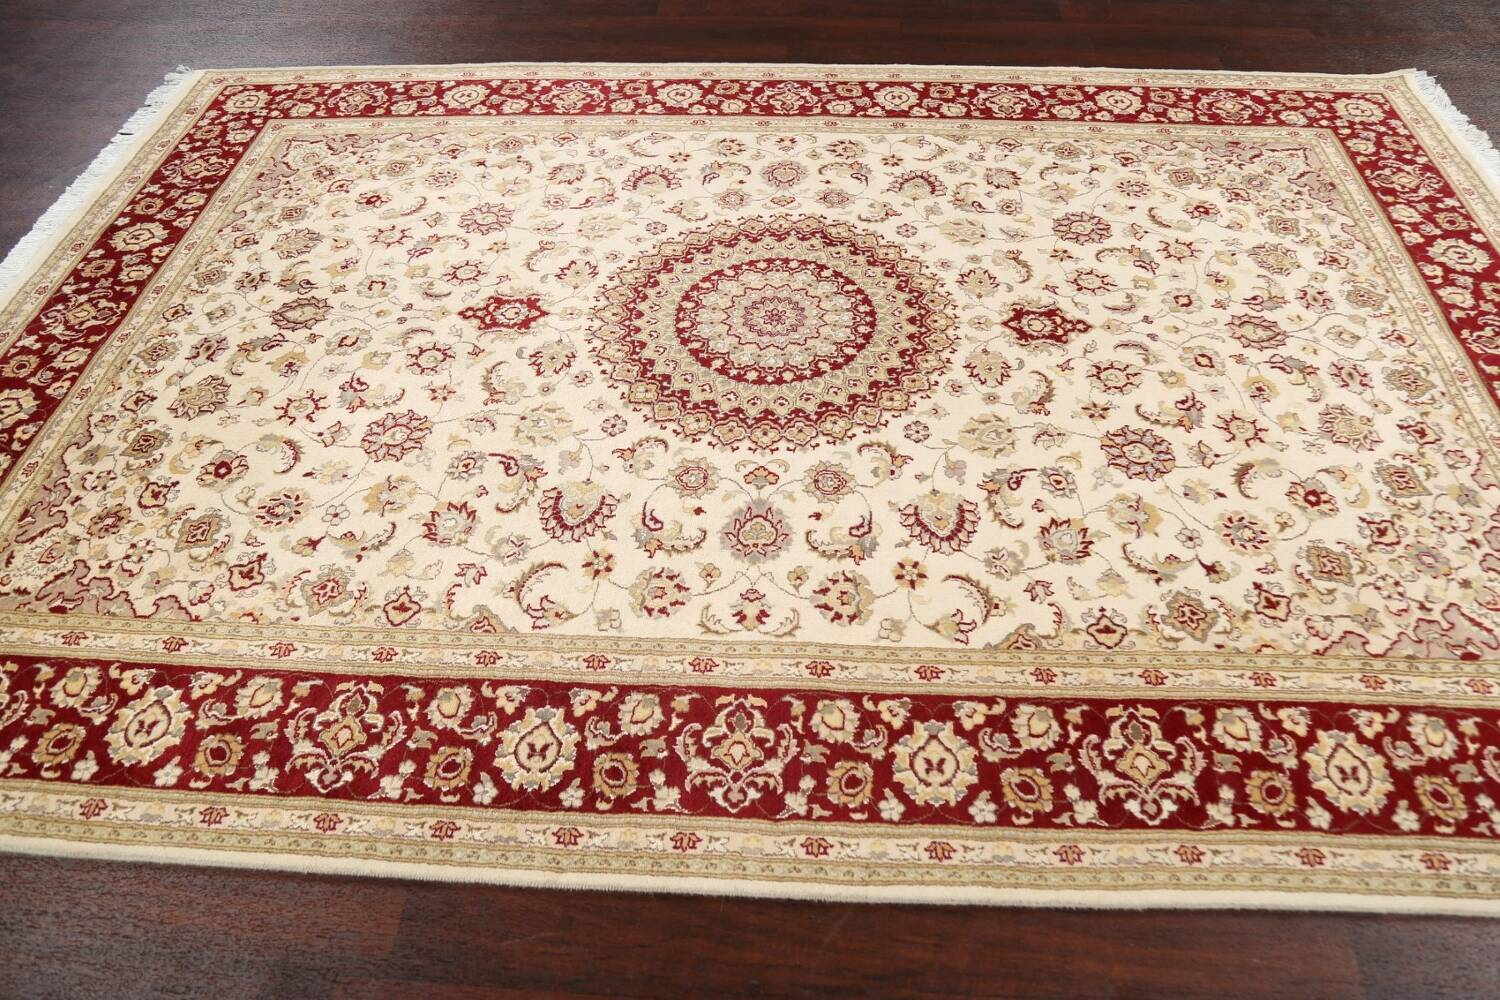 100% Vegetable Dye Floral Tabriz Oriental Area Rug 6x9 image 13